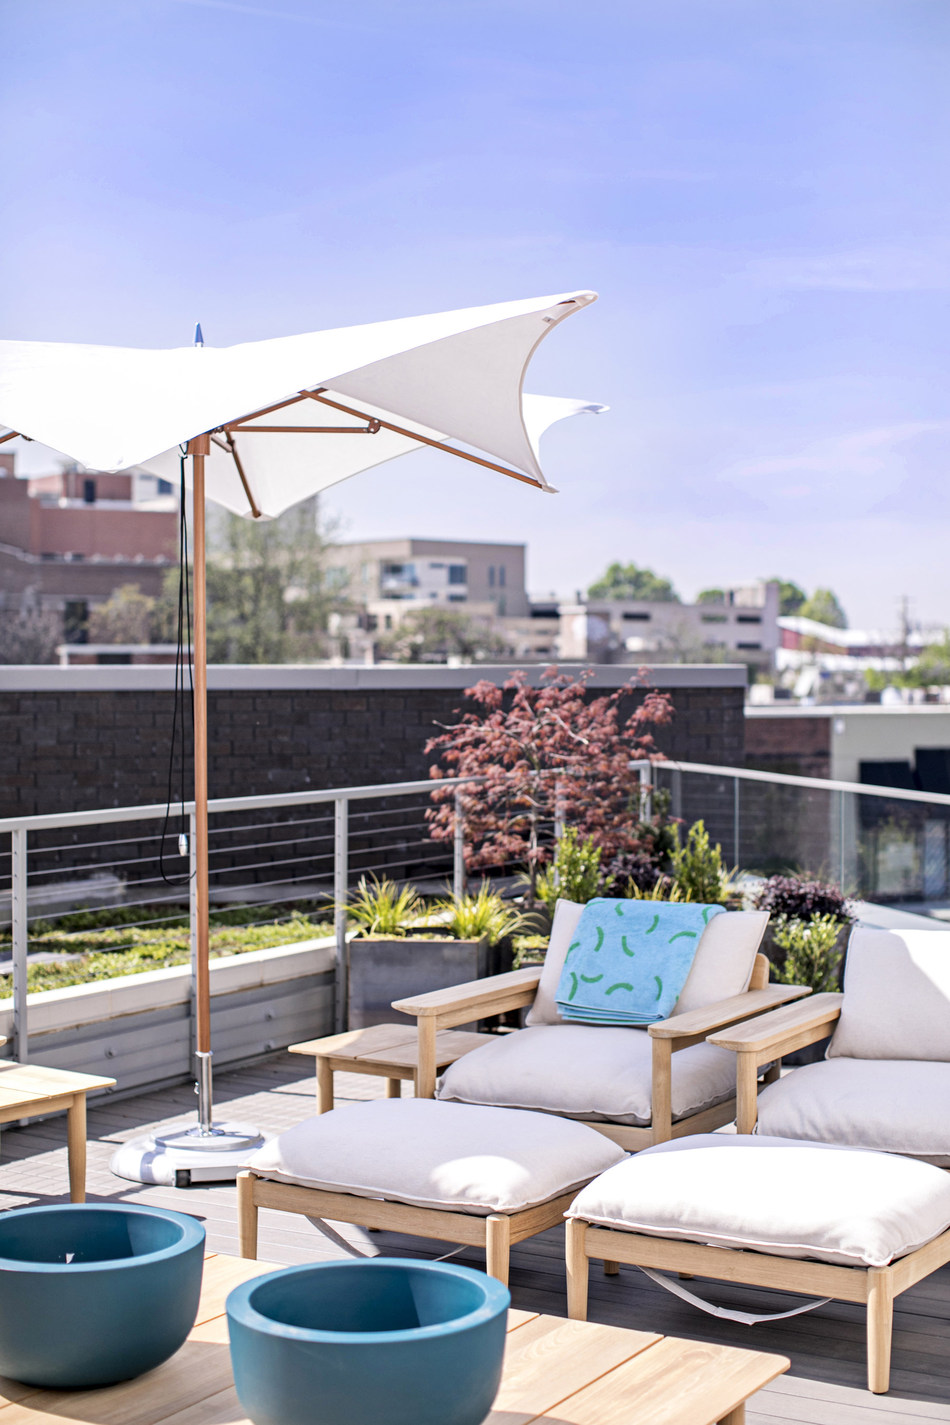 The Outdoor Terrace features collections for dining and lounging al fresco – as well as a skyline view. Photo by Heidi Geldhauser.